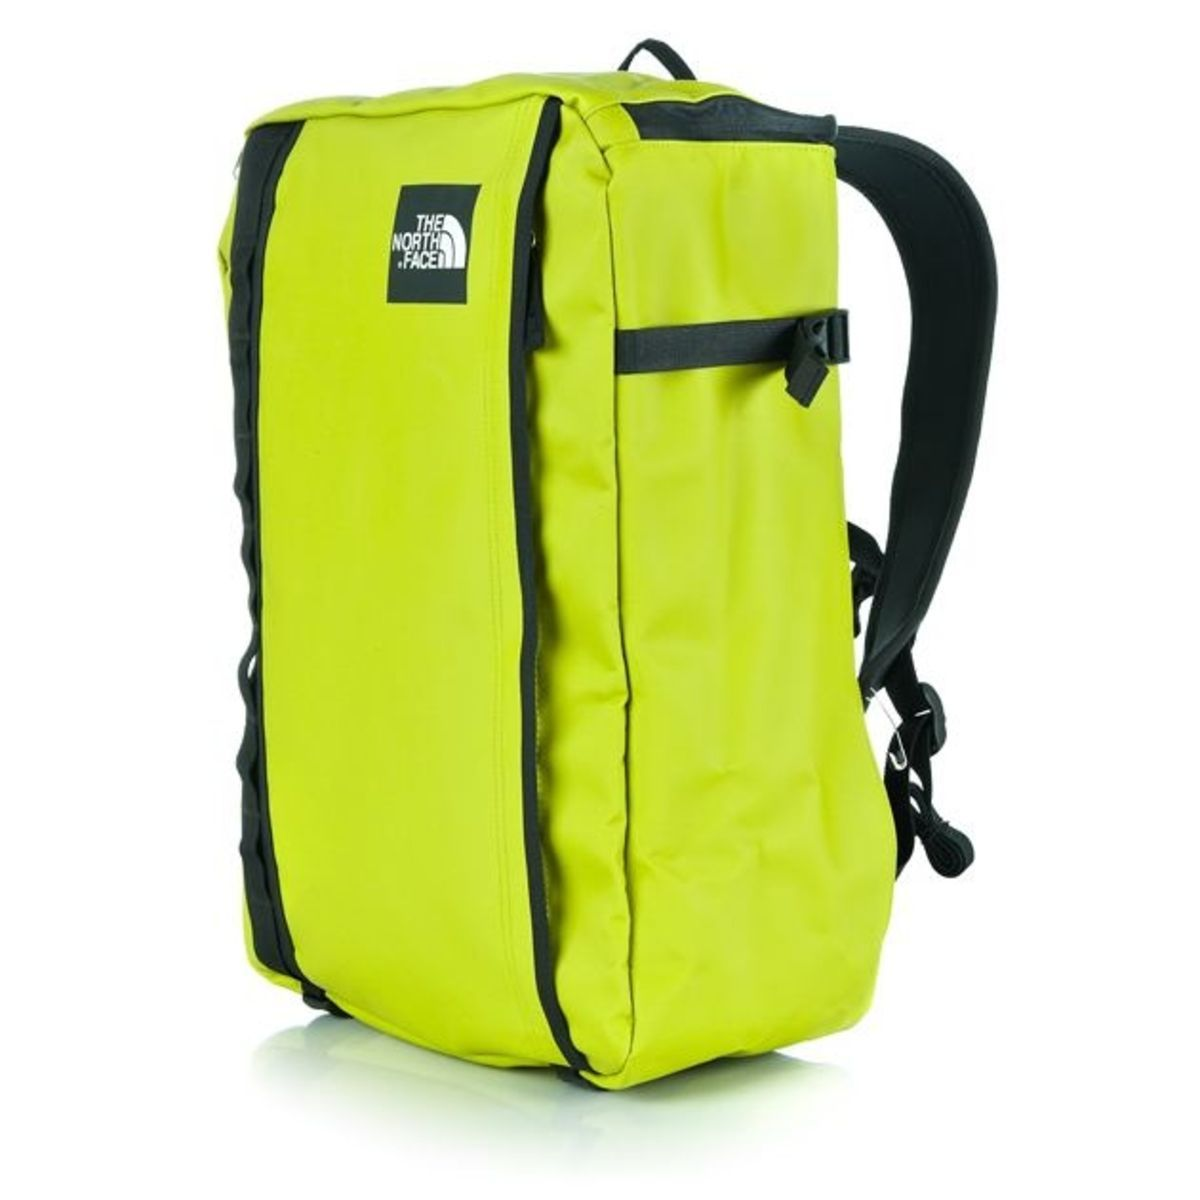 8b430b6977e0679e1d8298c3c0f9ae5b the north face bags the north face base camp fuse box duffle north face base camp fuse box backpack at gsmx.co